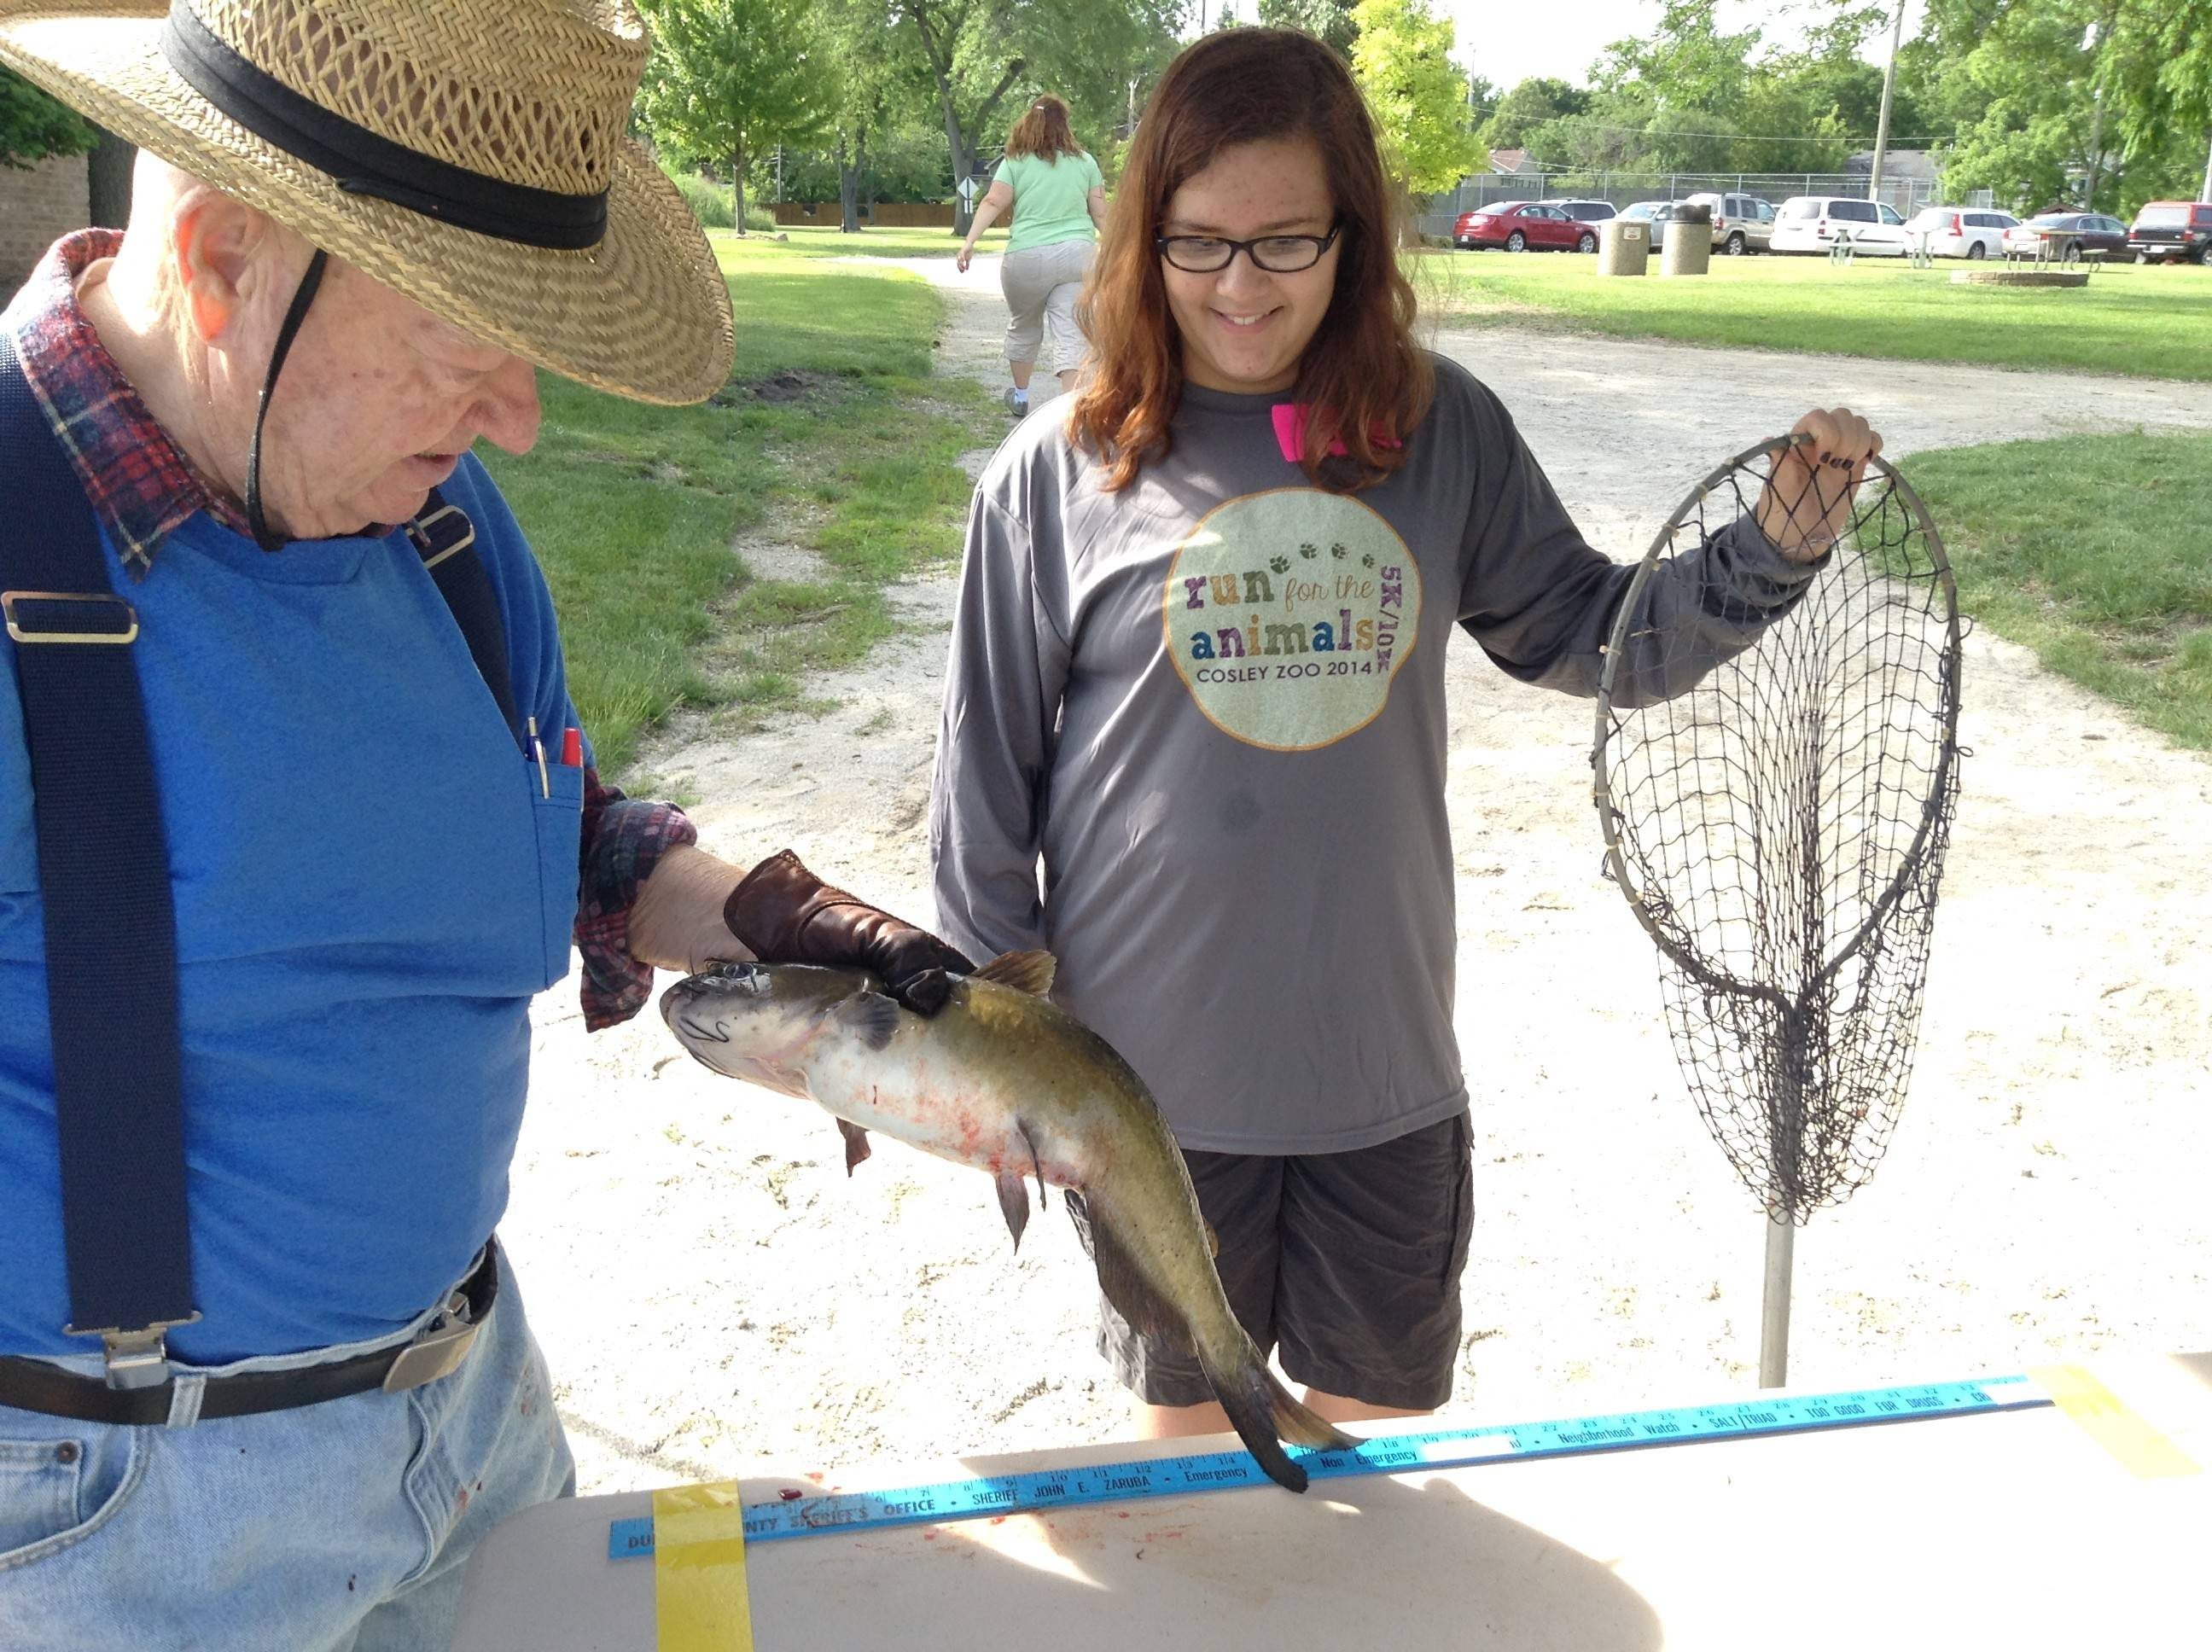 Jim Smith of the Kiwanis Club of Wheaton receives a 24¼-inch catfish from Meghan Aragon of Wheaton to measure and enter into the Wheaton Park District's Fish-O-Rama fishing competition at Northside Park Saturday. Aragon's catfish came in second place in the day's biggest fish category.